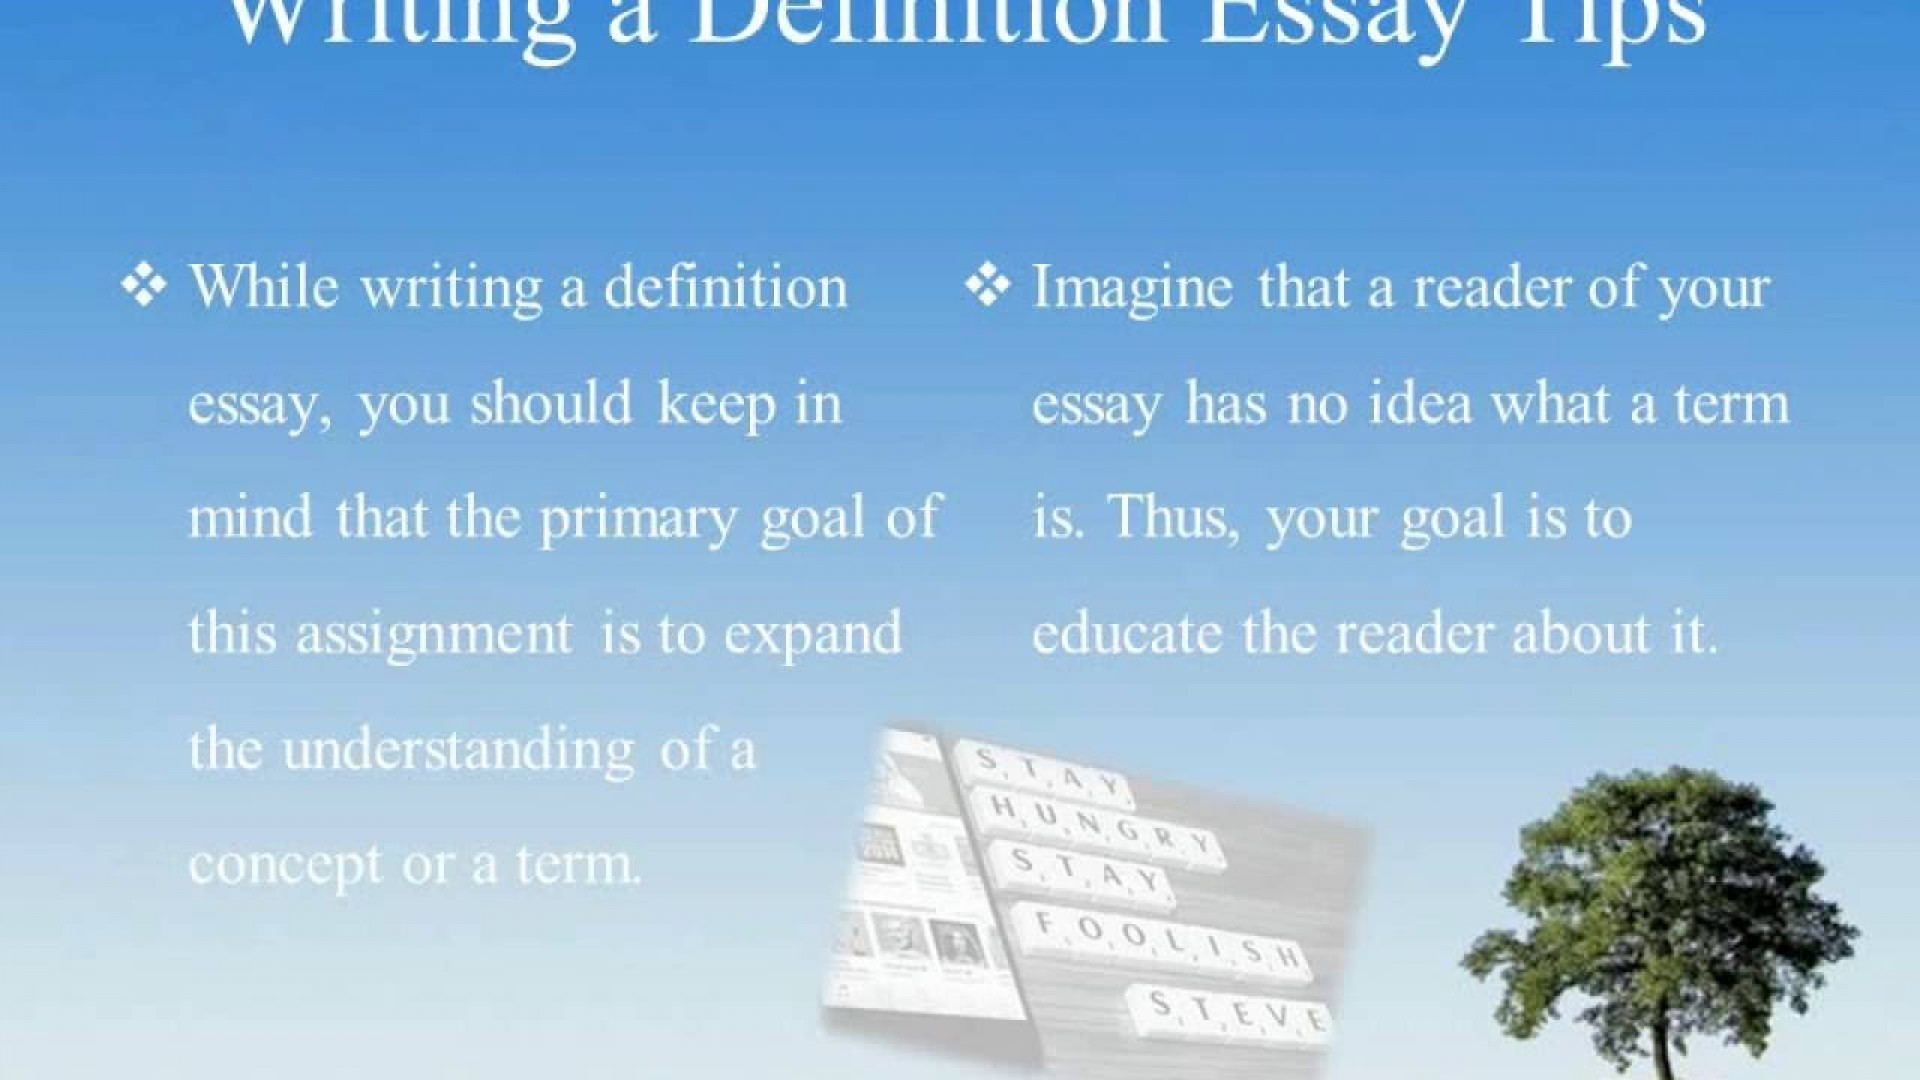 019 Definition Essay Topics Maxresdefault Striking List For College Students 1920